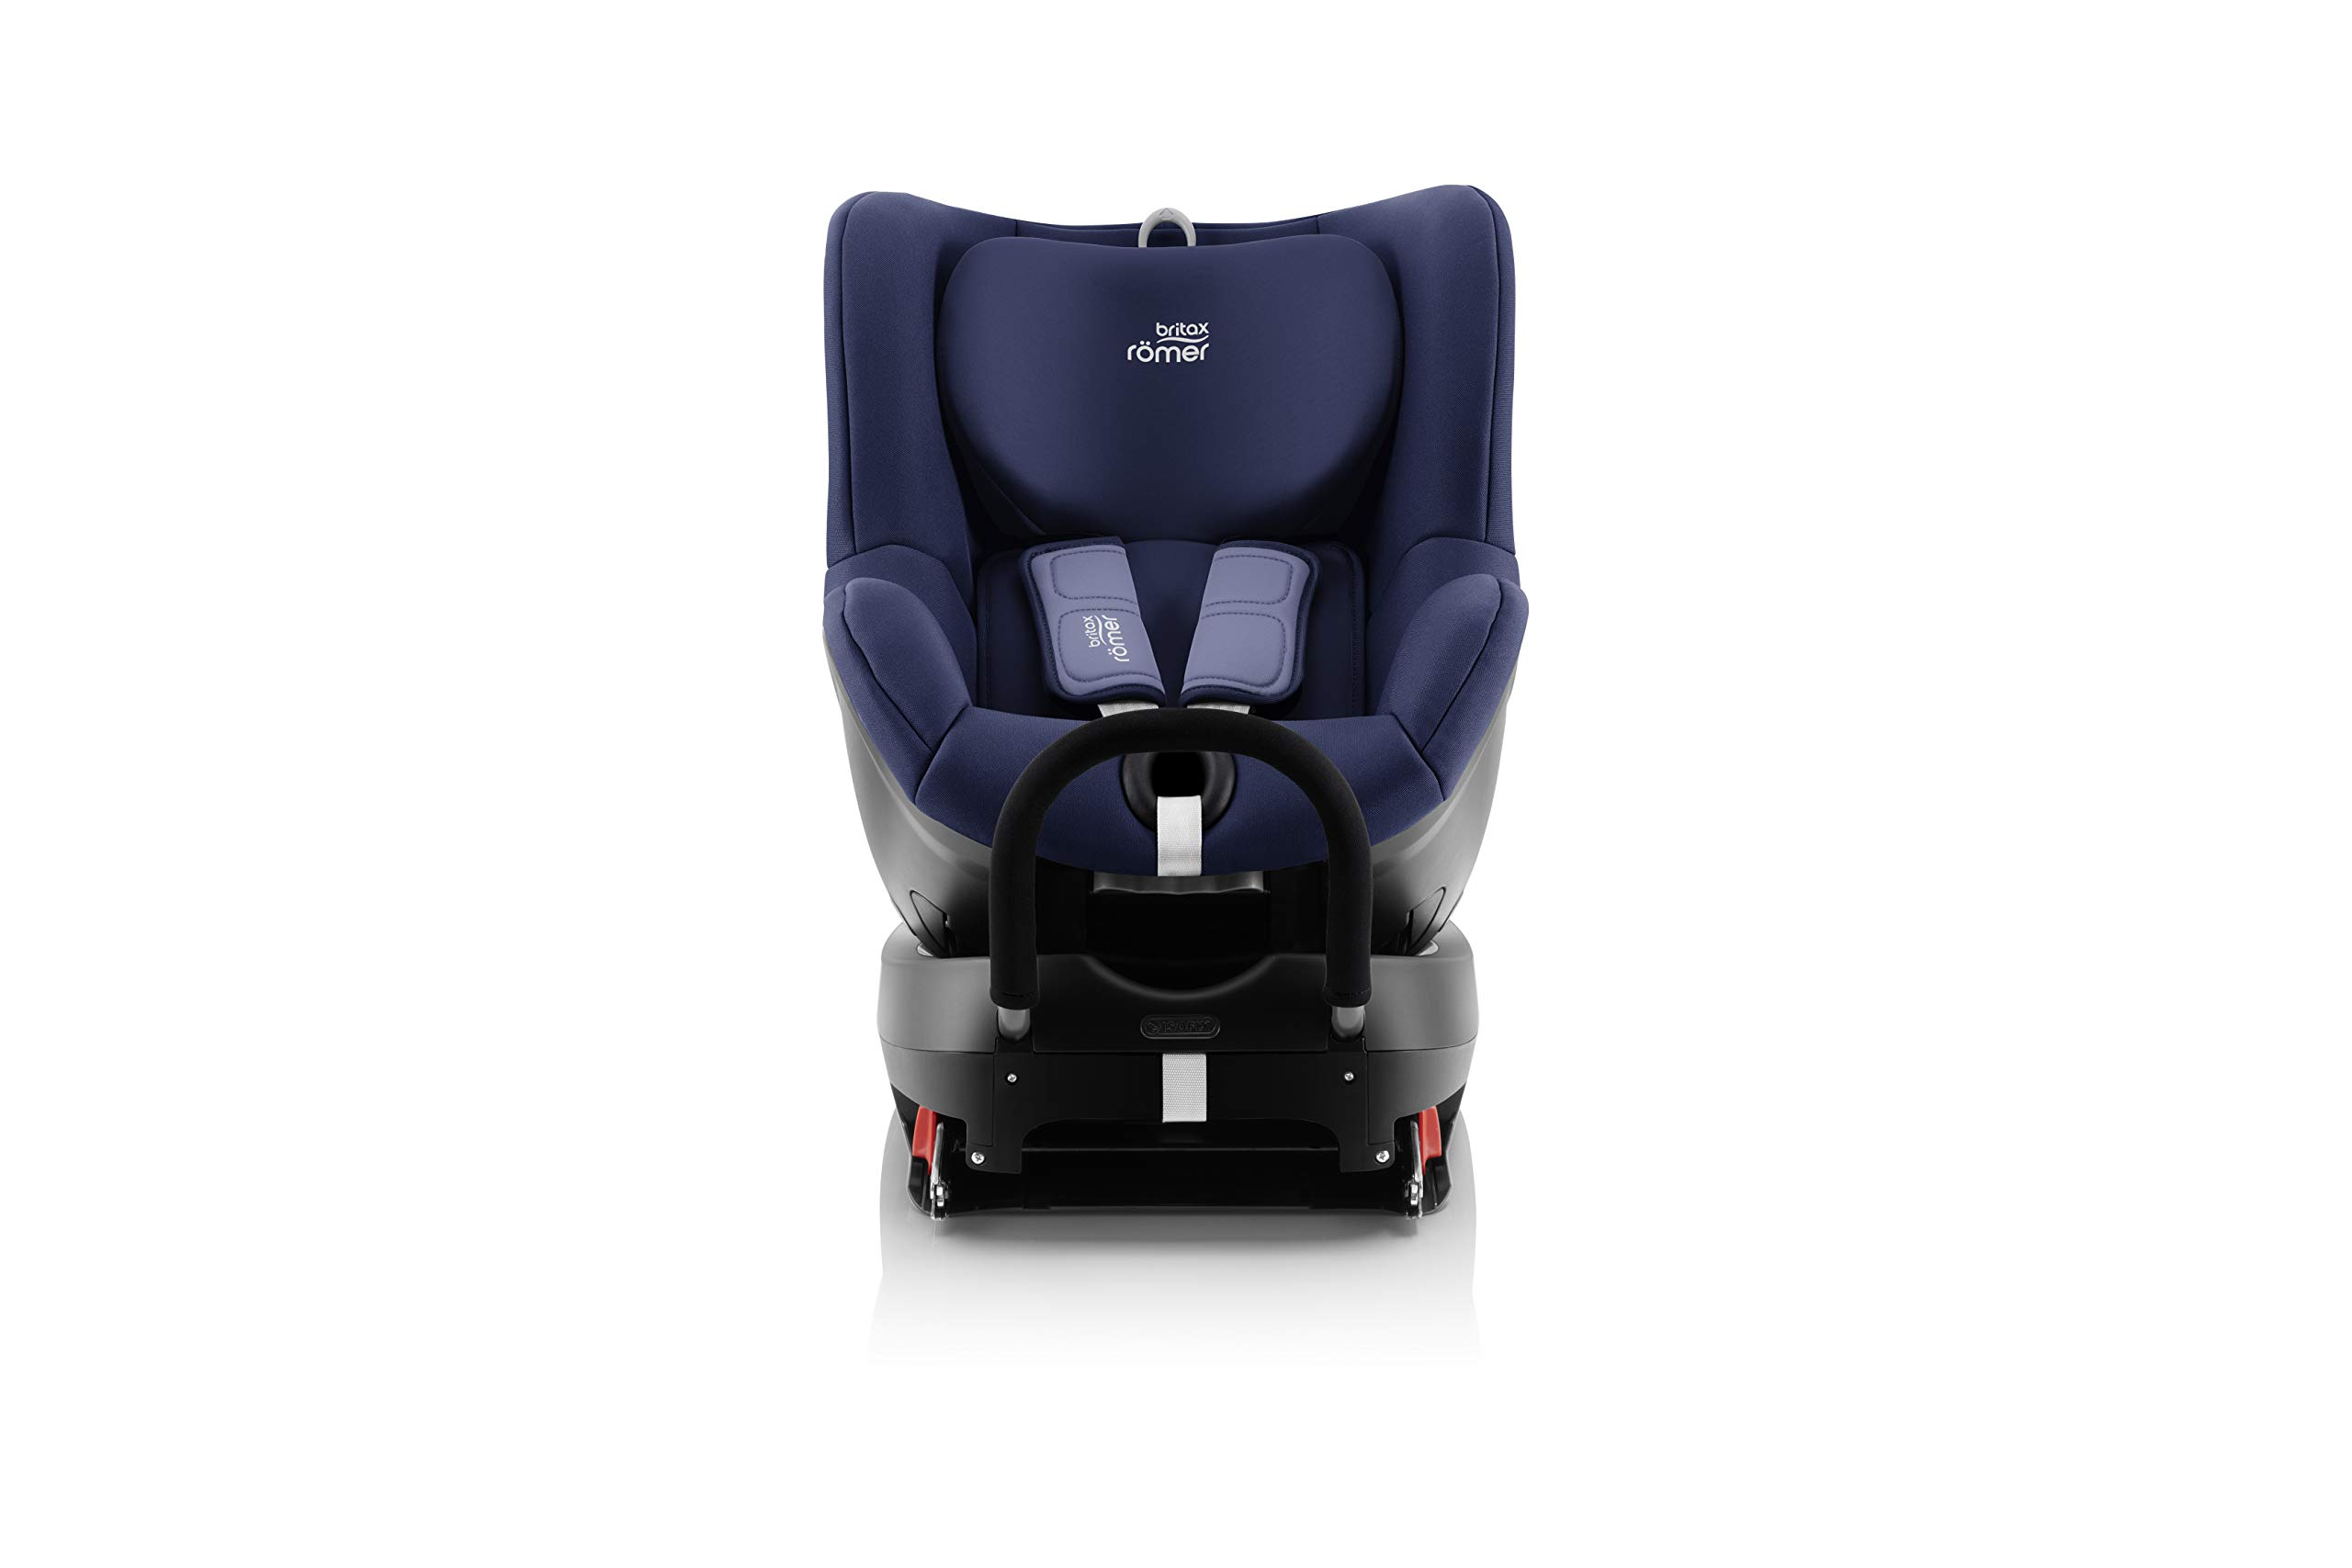 Britax Römer car seat birth DUALFIX 2 R car seat swivel group 0+/1, Moonlight Blue, 18 kg Britax Römer Intuitive 360 Degree rotation for rearward and forward facing usage Easy entry with 90 Degree rotation to the open door for easy placement of the child Extended rearward facing travel with more leg space thanks to shorter rebound bar 2